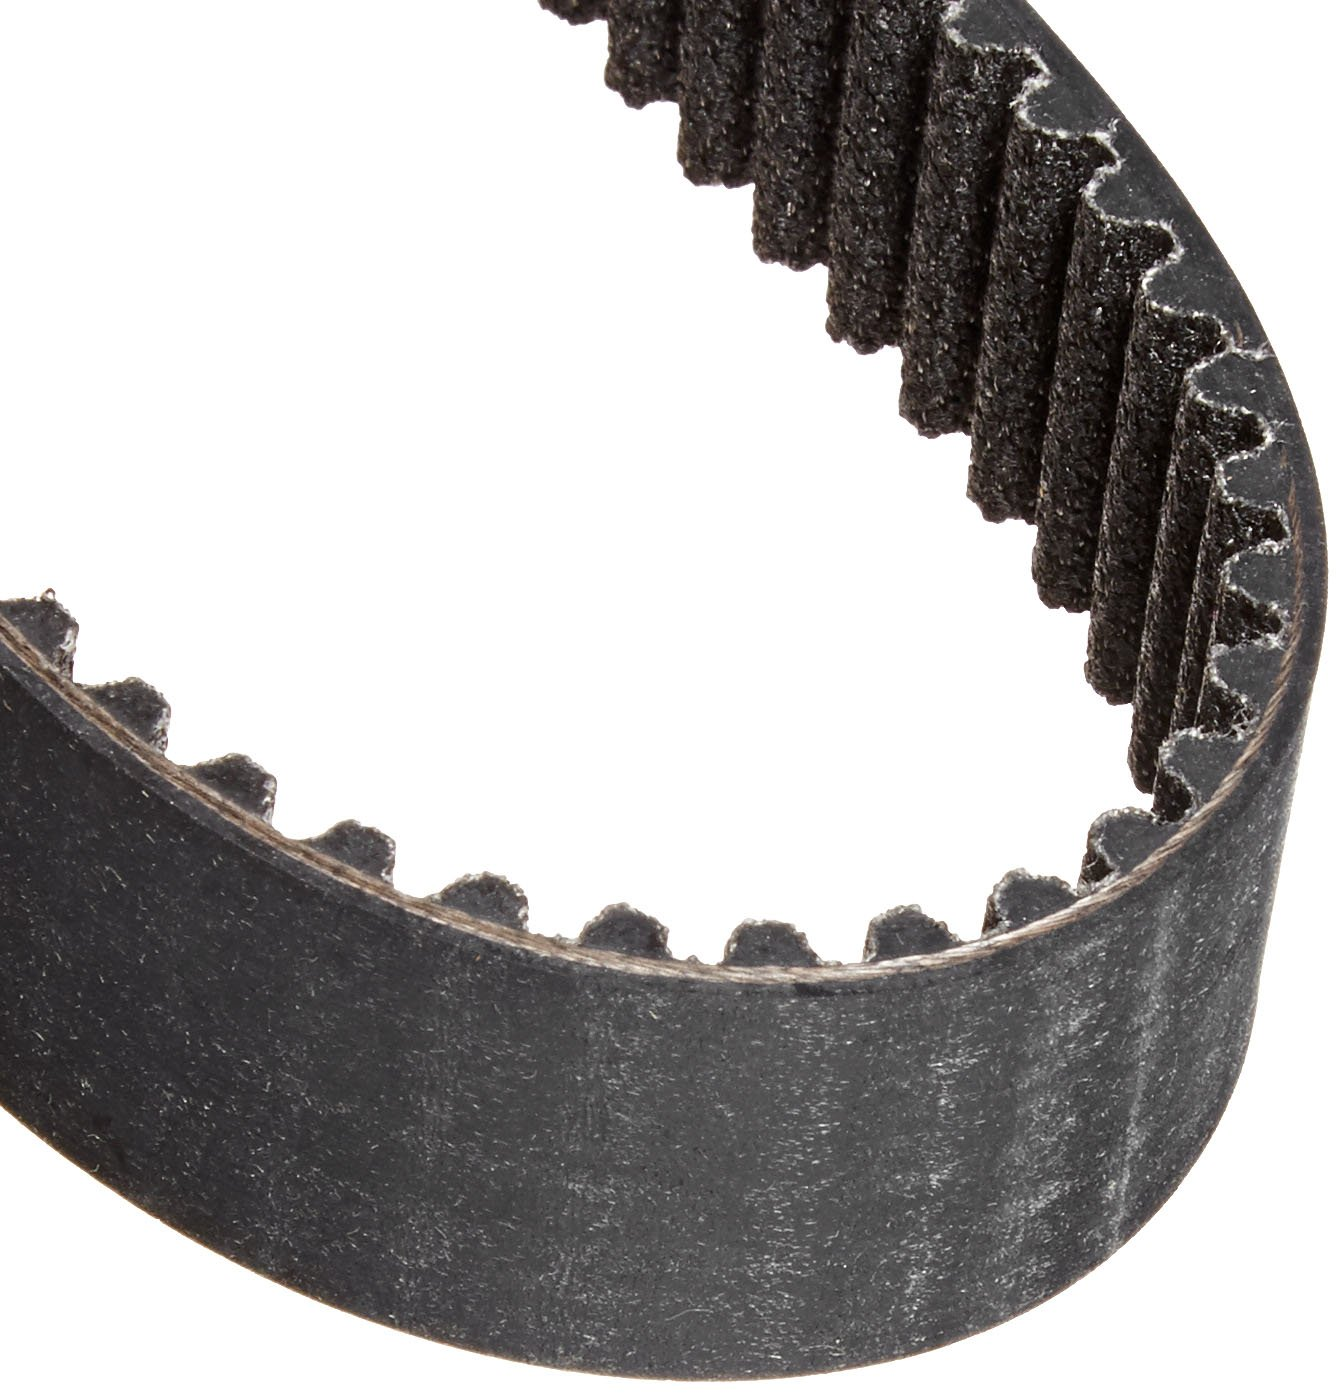 Gates 1160-8MGT-30 GT 2 PowerGrip Belt, 8mm Pitch, 30mm Width, 145 Teeth, 45.67